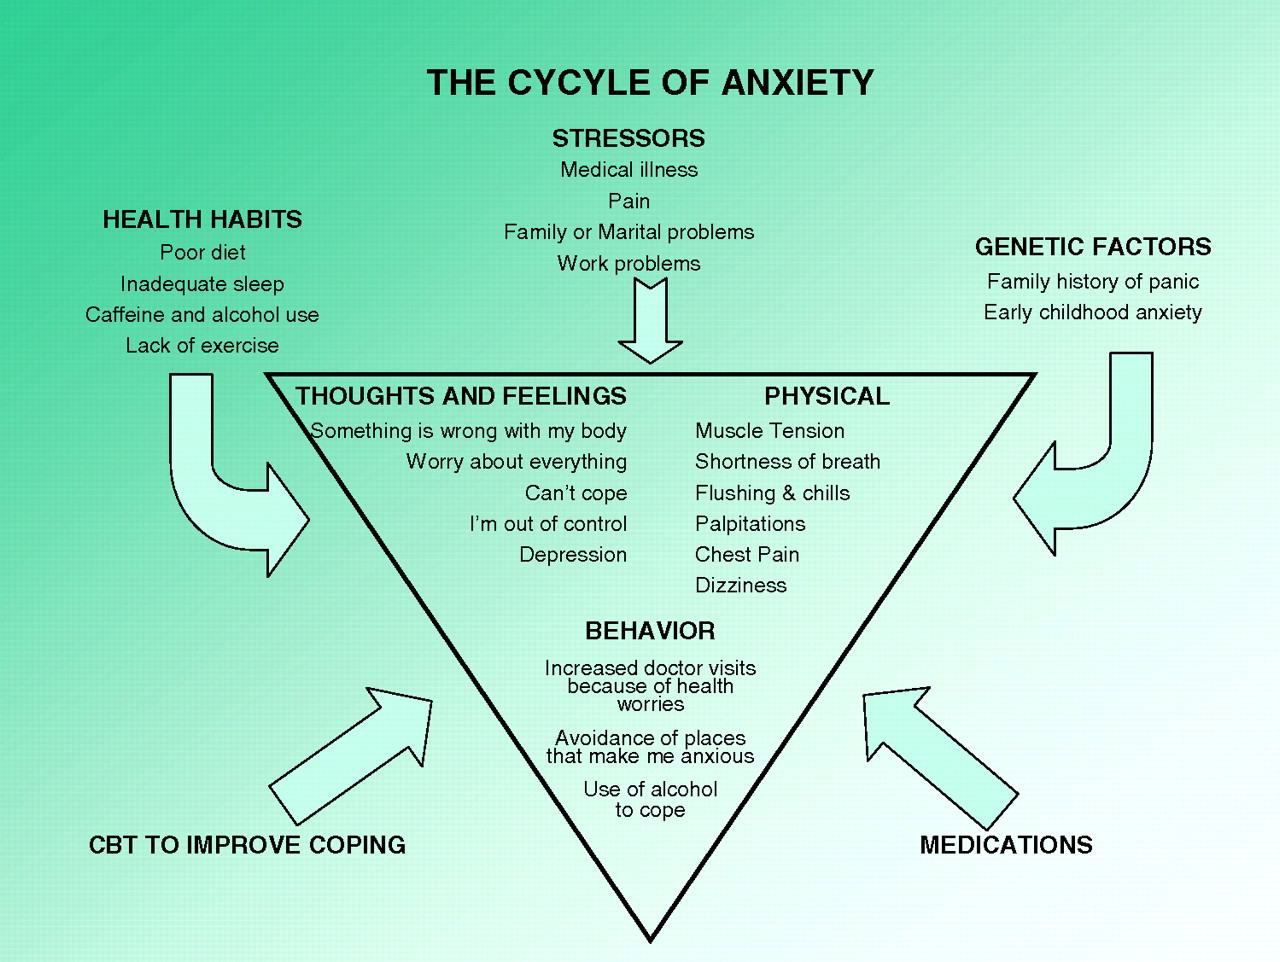 Brief Intervention for Anxiety in Primary Care Patients   American